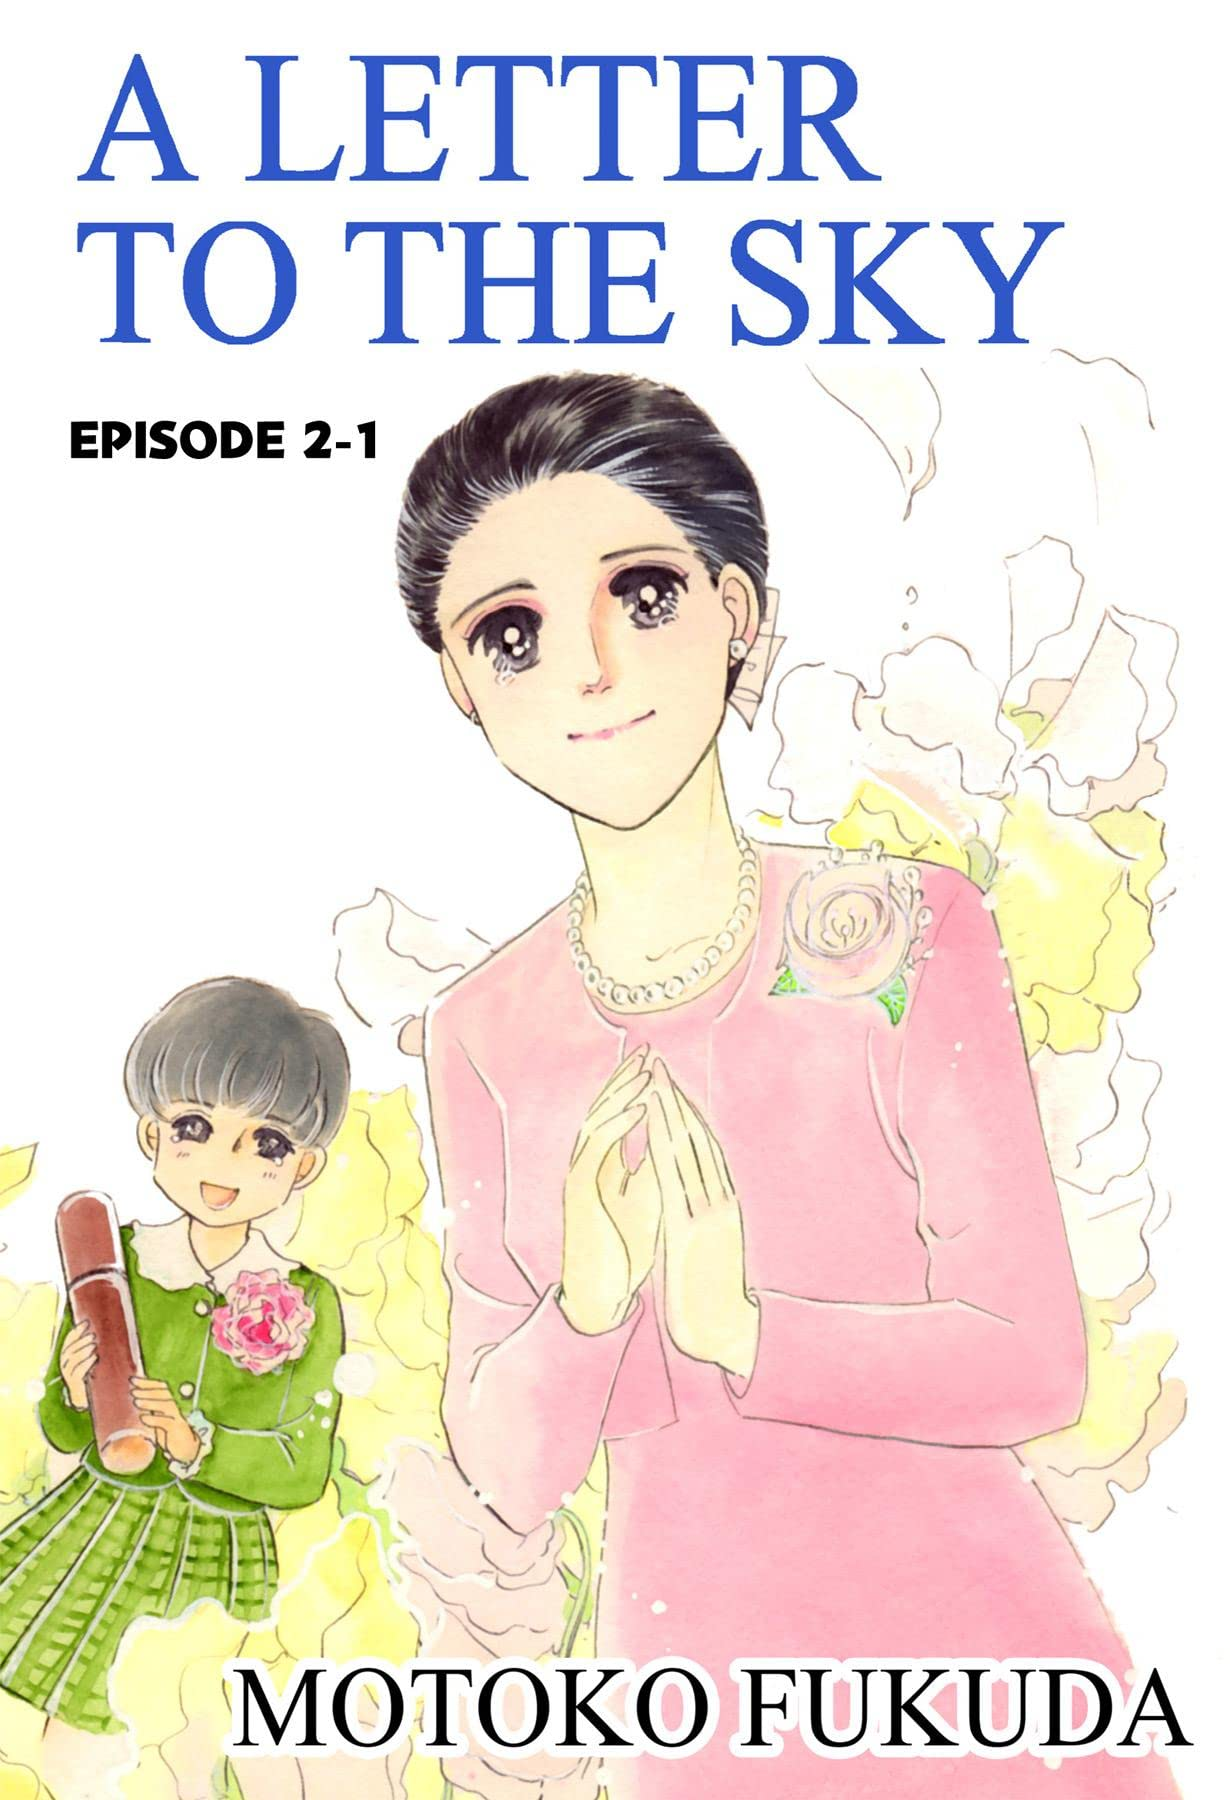 A LETTER TO THE SKY #9